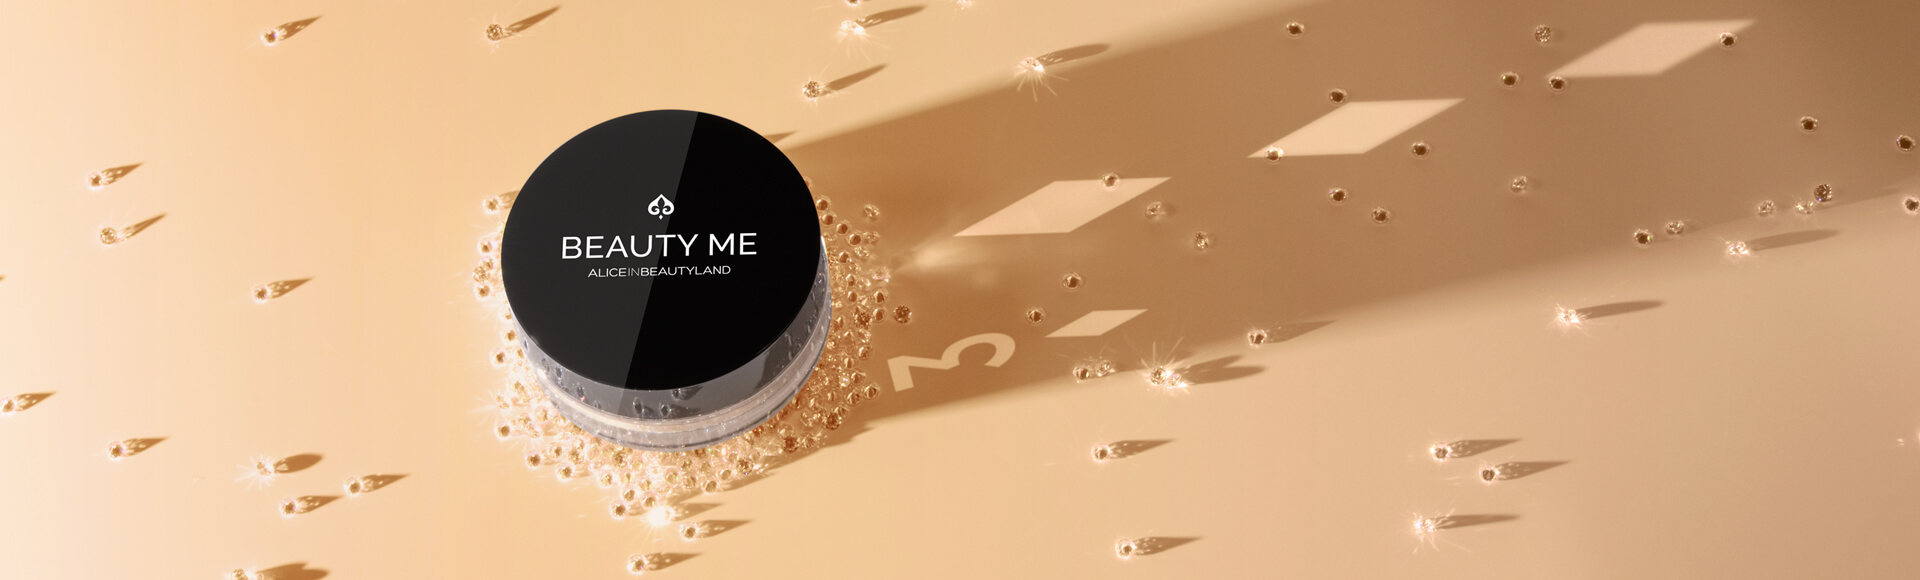 Beauty me makeup mineral foundation with a poker card shadow and diamonds